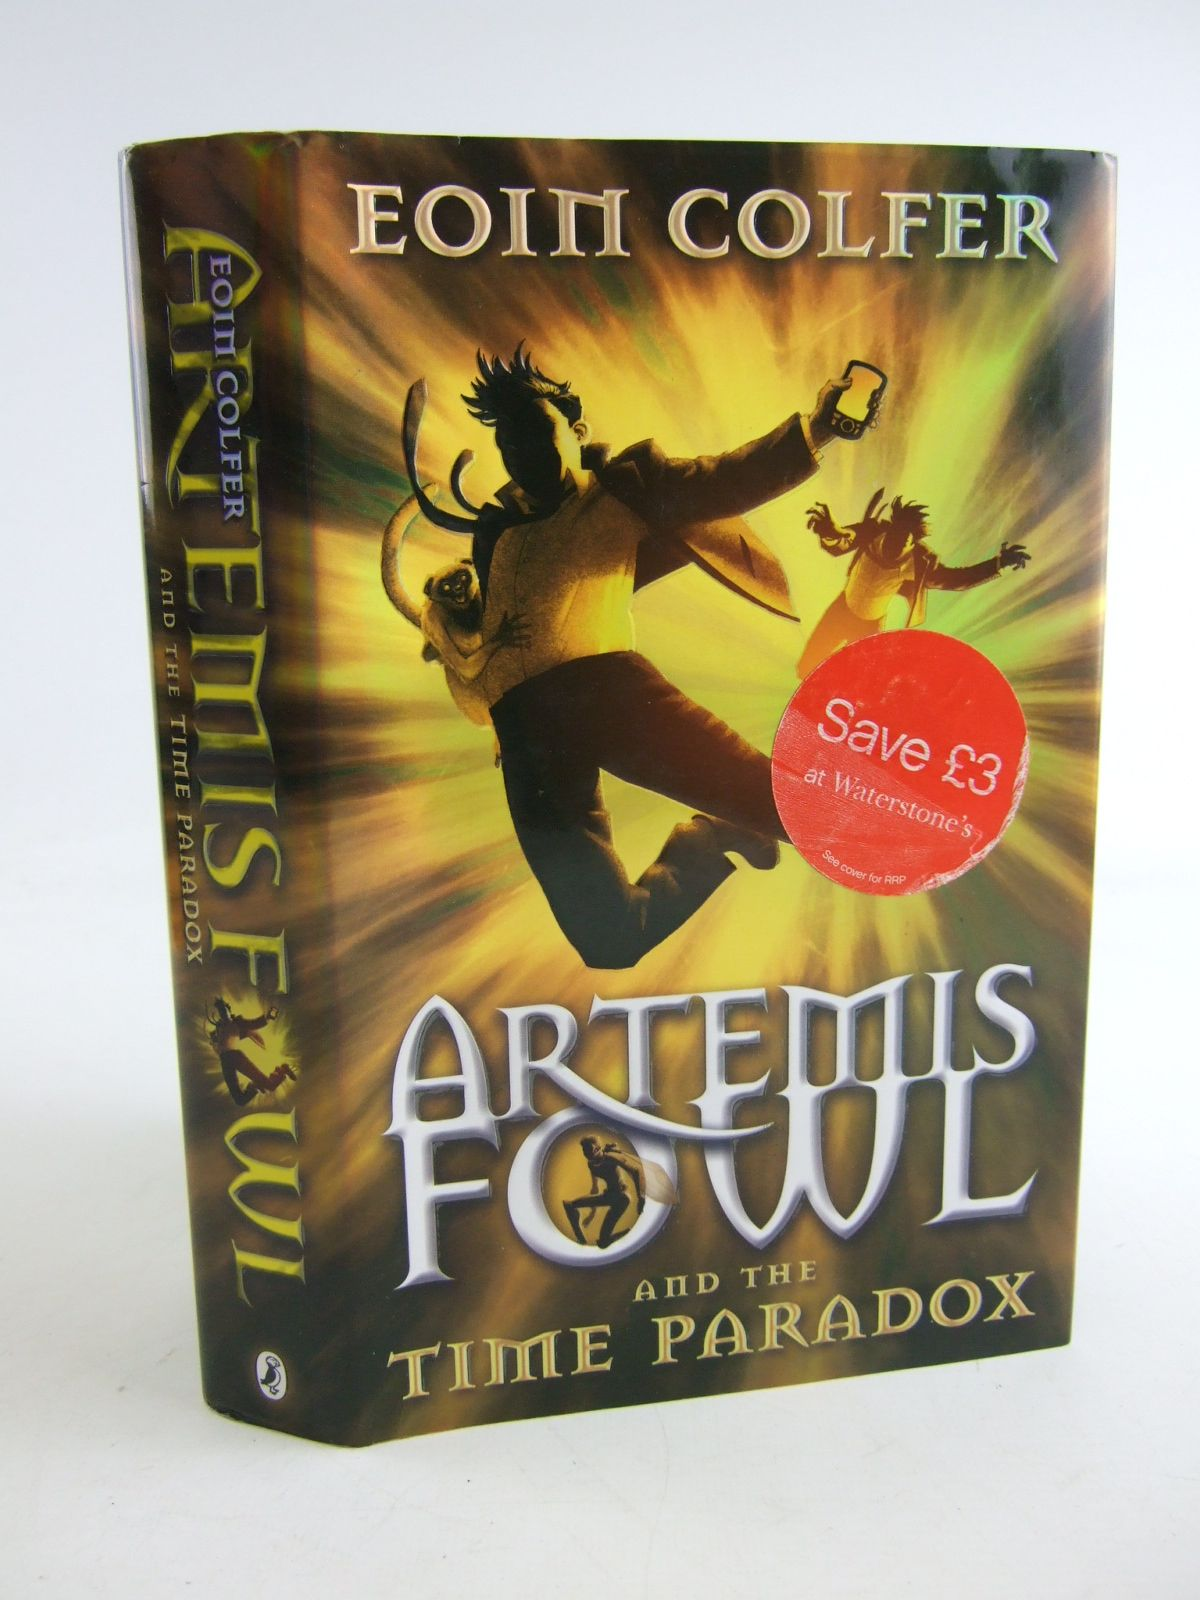 1200 Photo Of Artemis Fowl And The Time Paradox Written By Colfer, Eoin  Published By Puffin